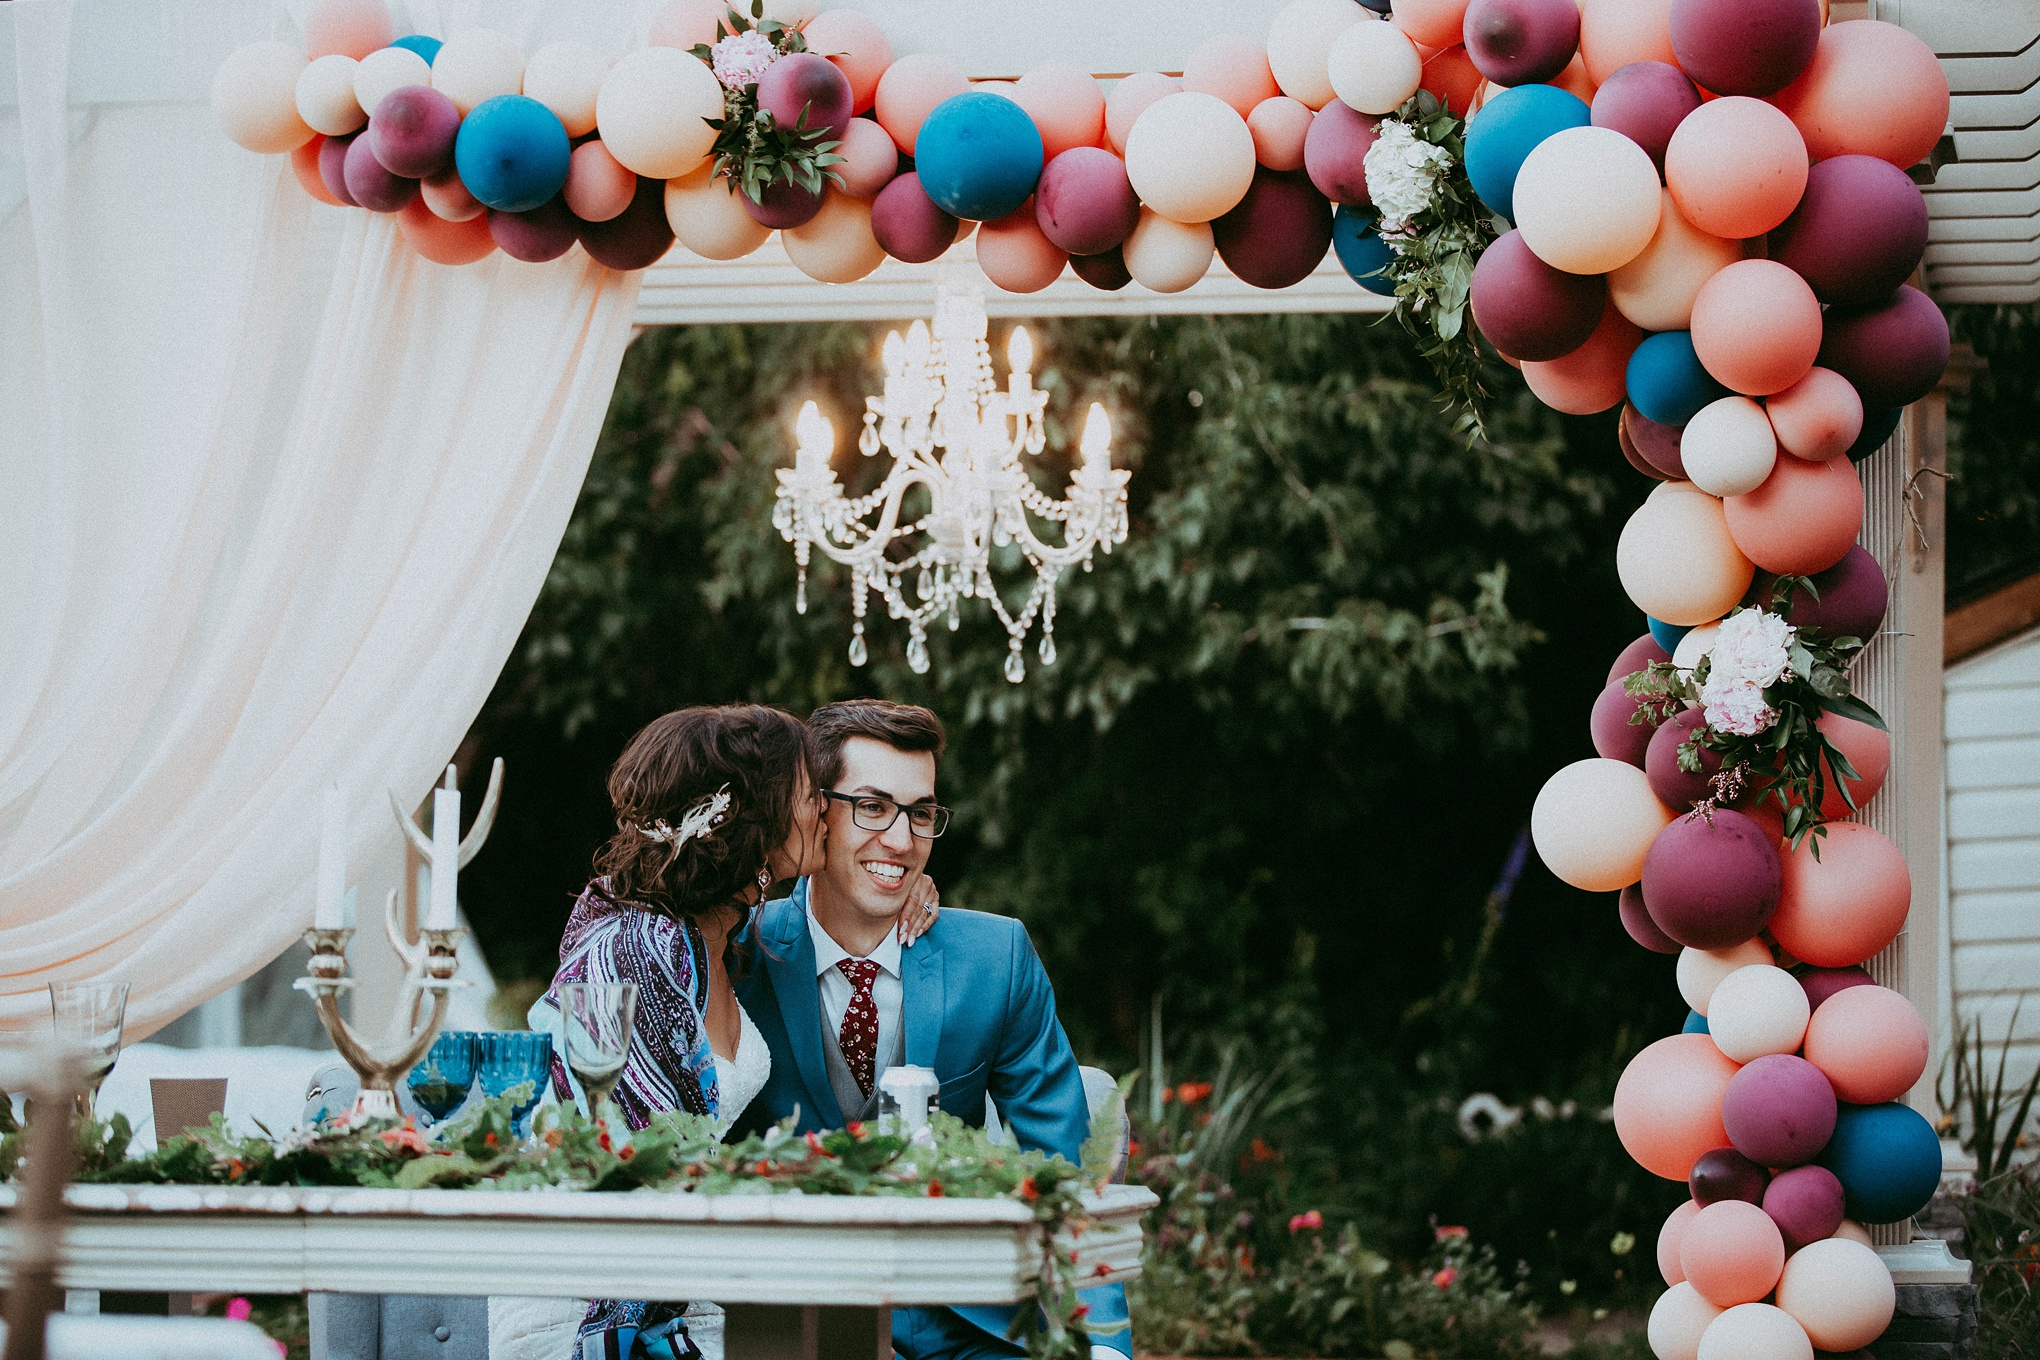 calgary elopement photographer, calgary elopement photographers, intimate wedding, boho wedding, balloon wedding, calgary photographers